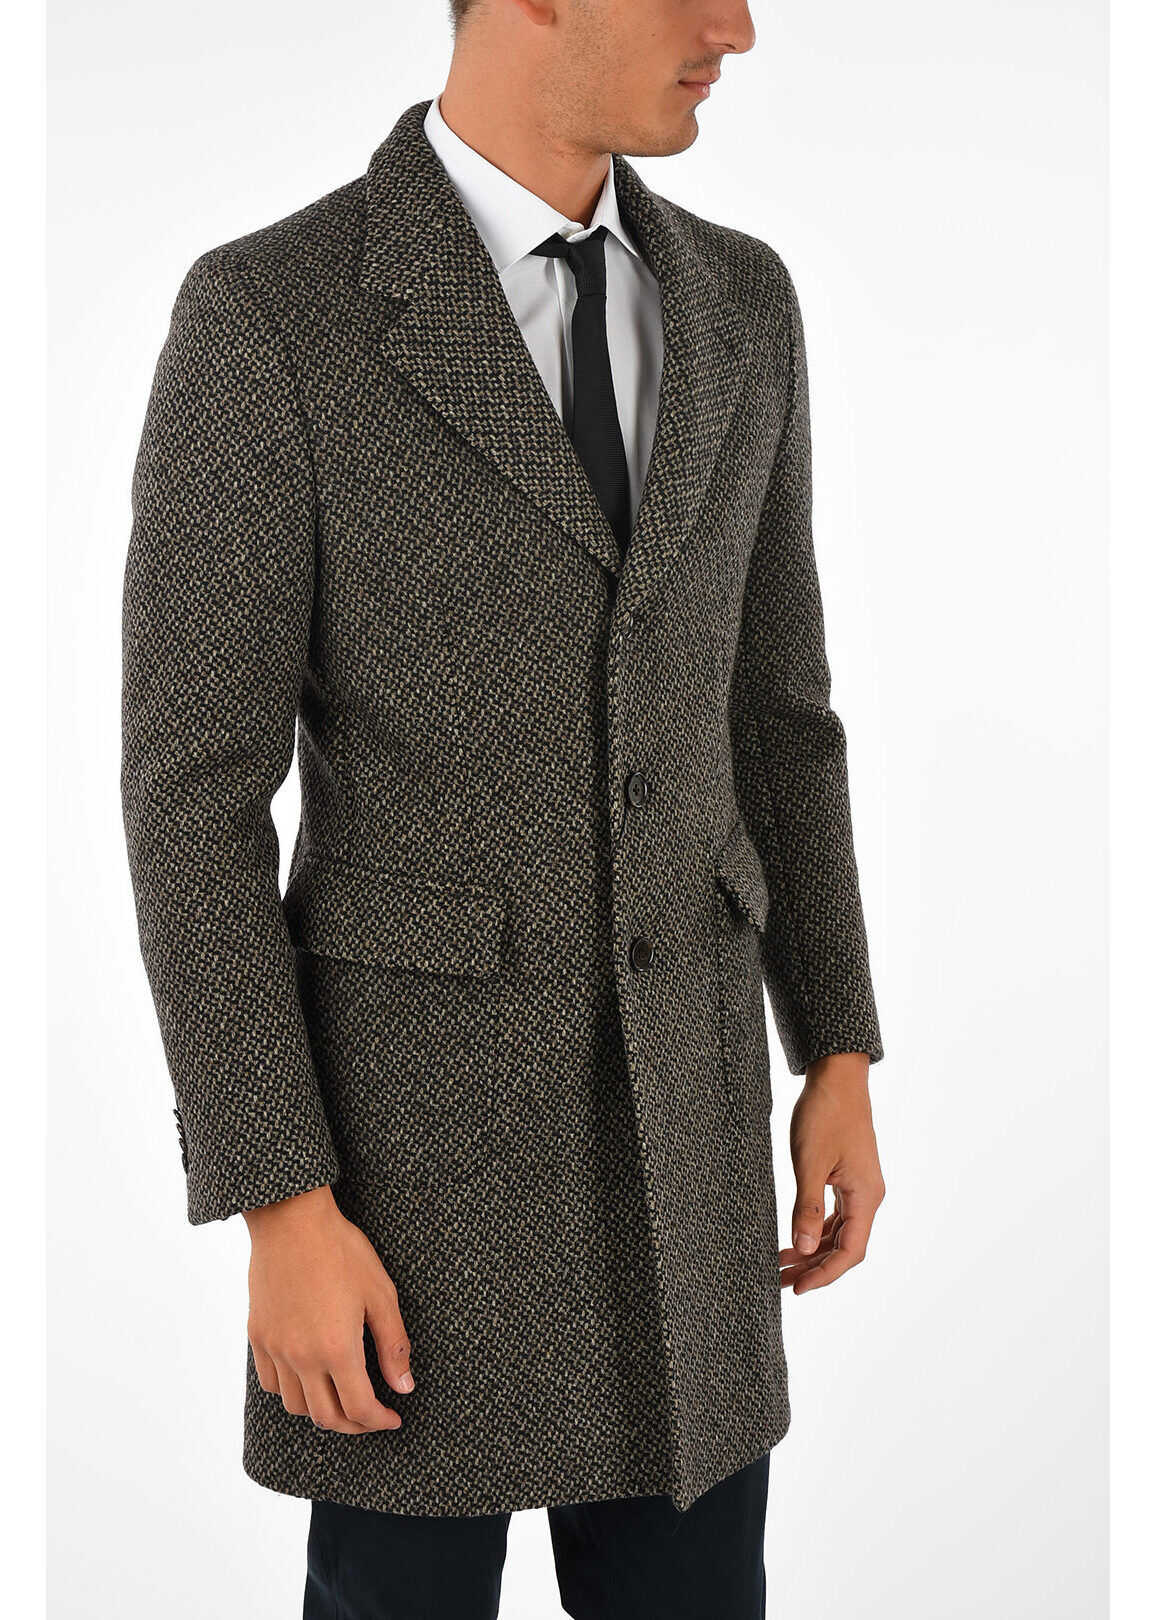 CORNELIANI CC COLLECTION Half Lined 3 Button Coat MULTICOLOR